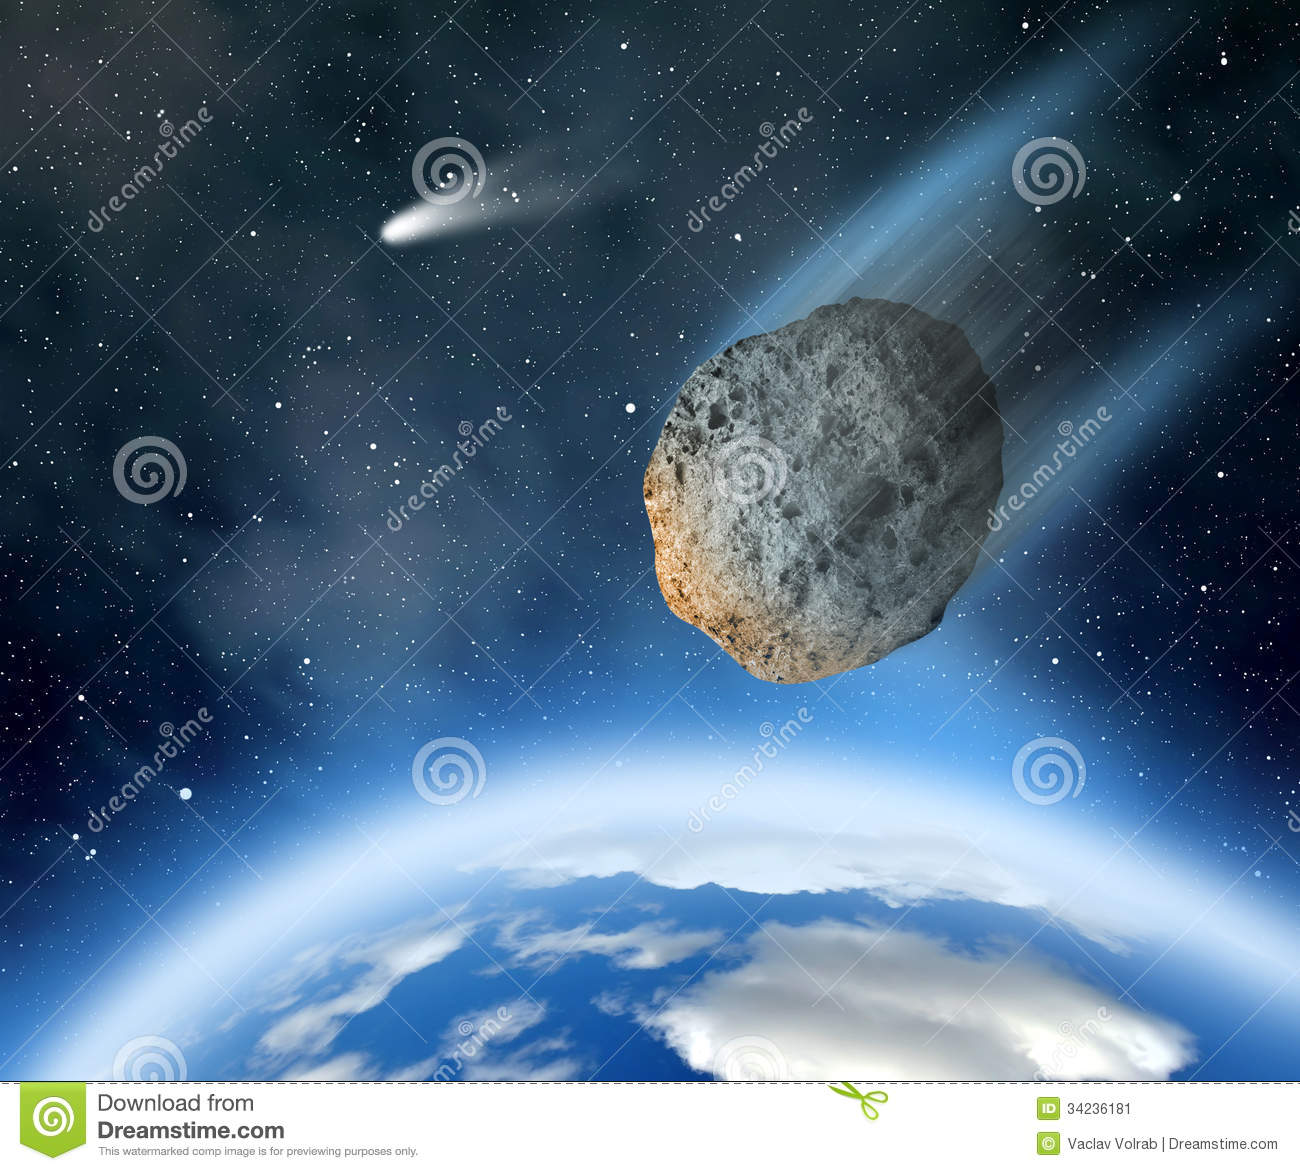 Asteroid Falling On Earth Stock Image - Image: 34236181